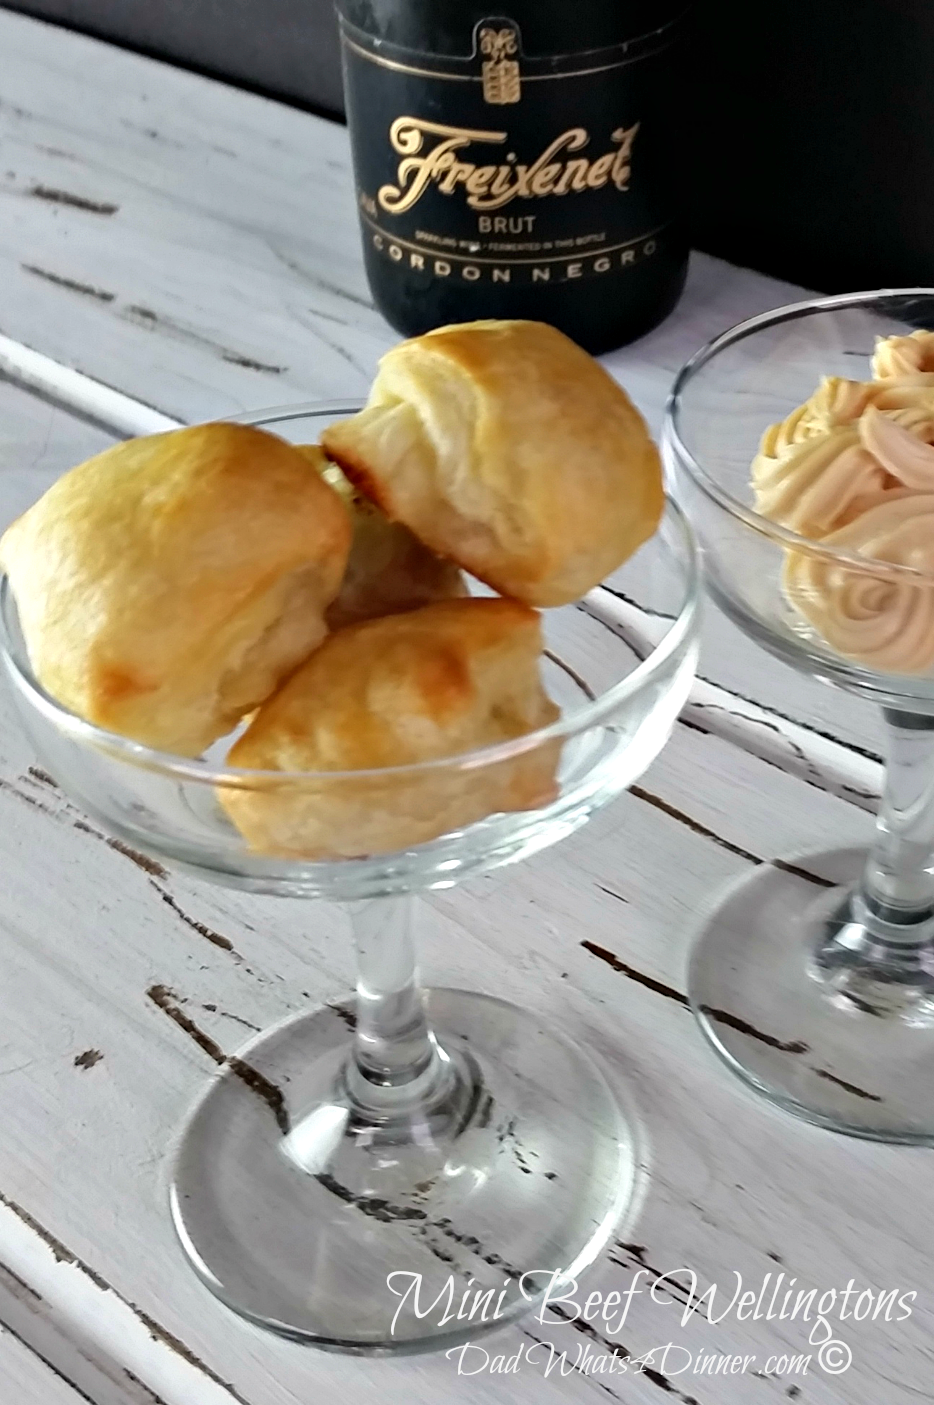 Mini Beef Wellingtons | https://dadwhats4dinner.com/